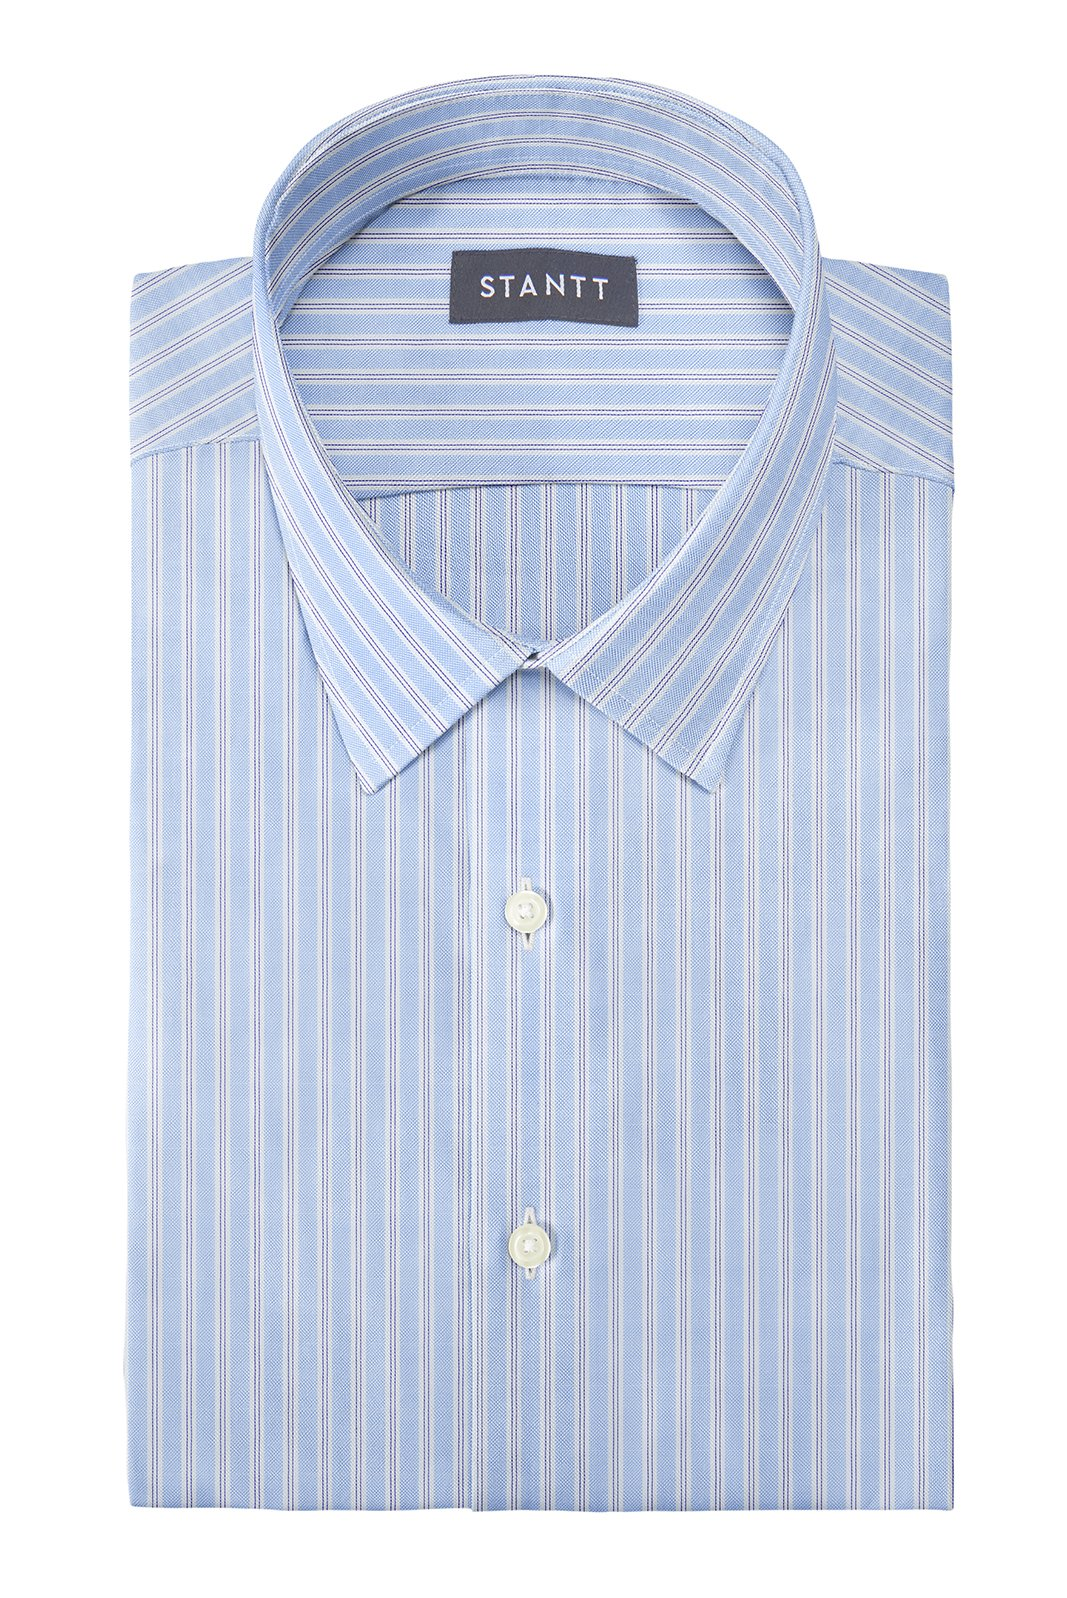 Matrix Reverse Blue Rail Stripe: Semi-Spread Collar, Barrel Cuff